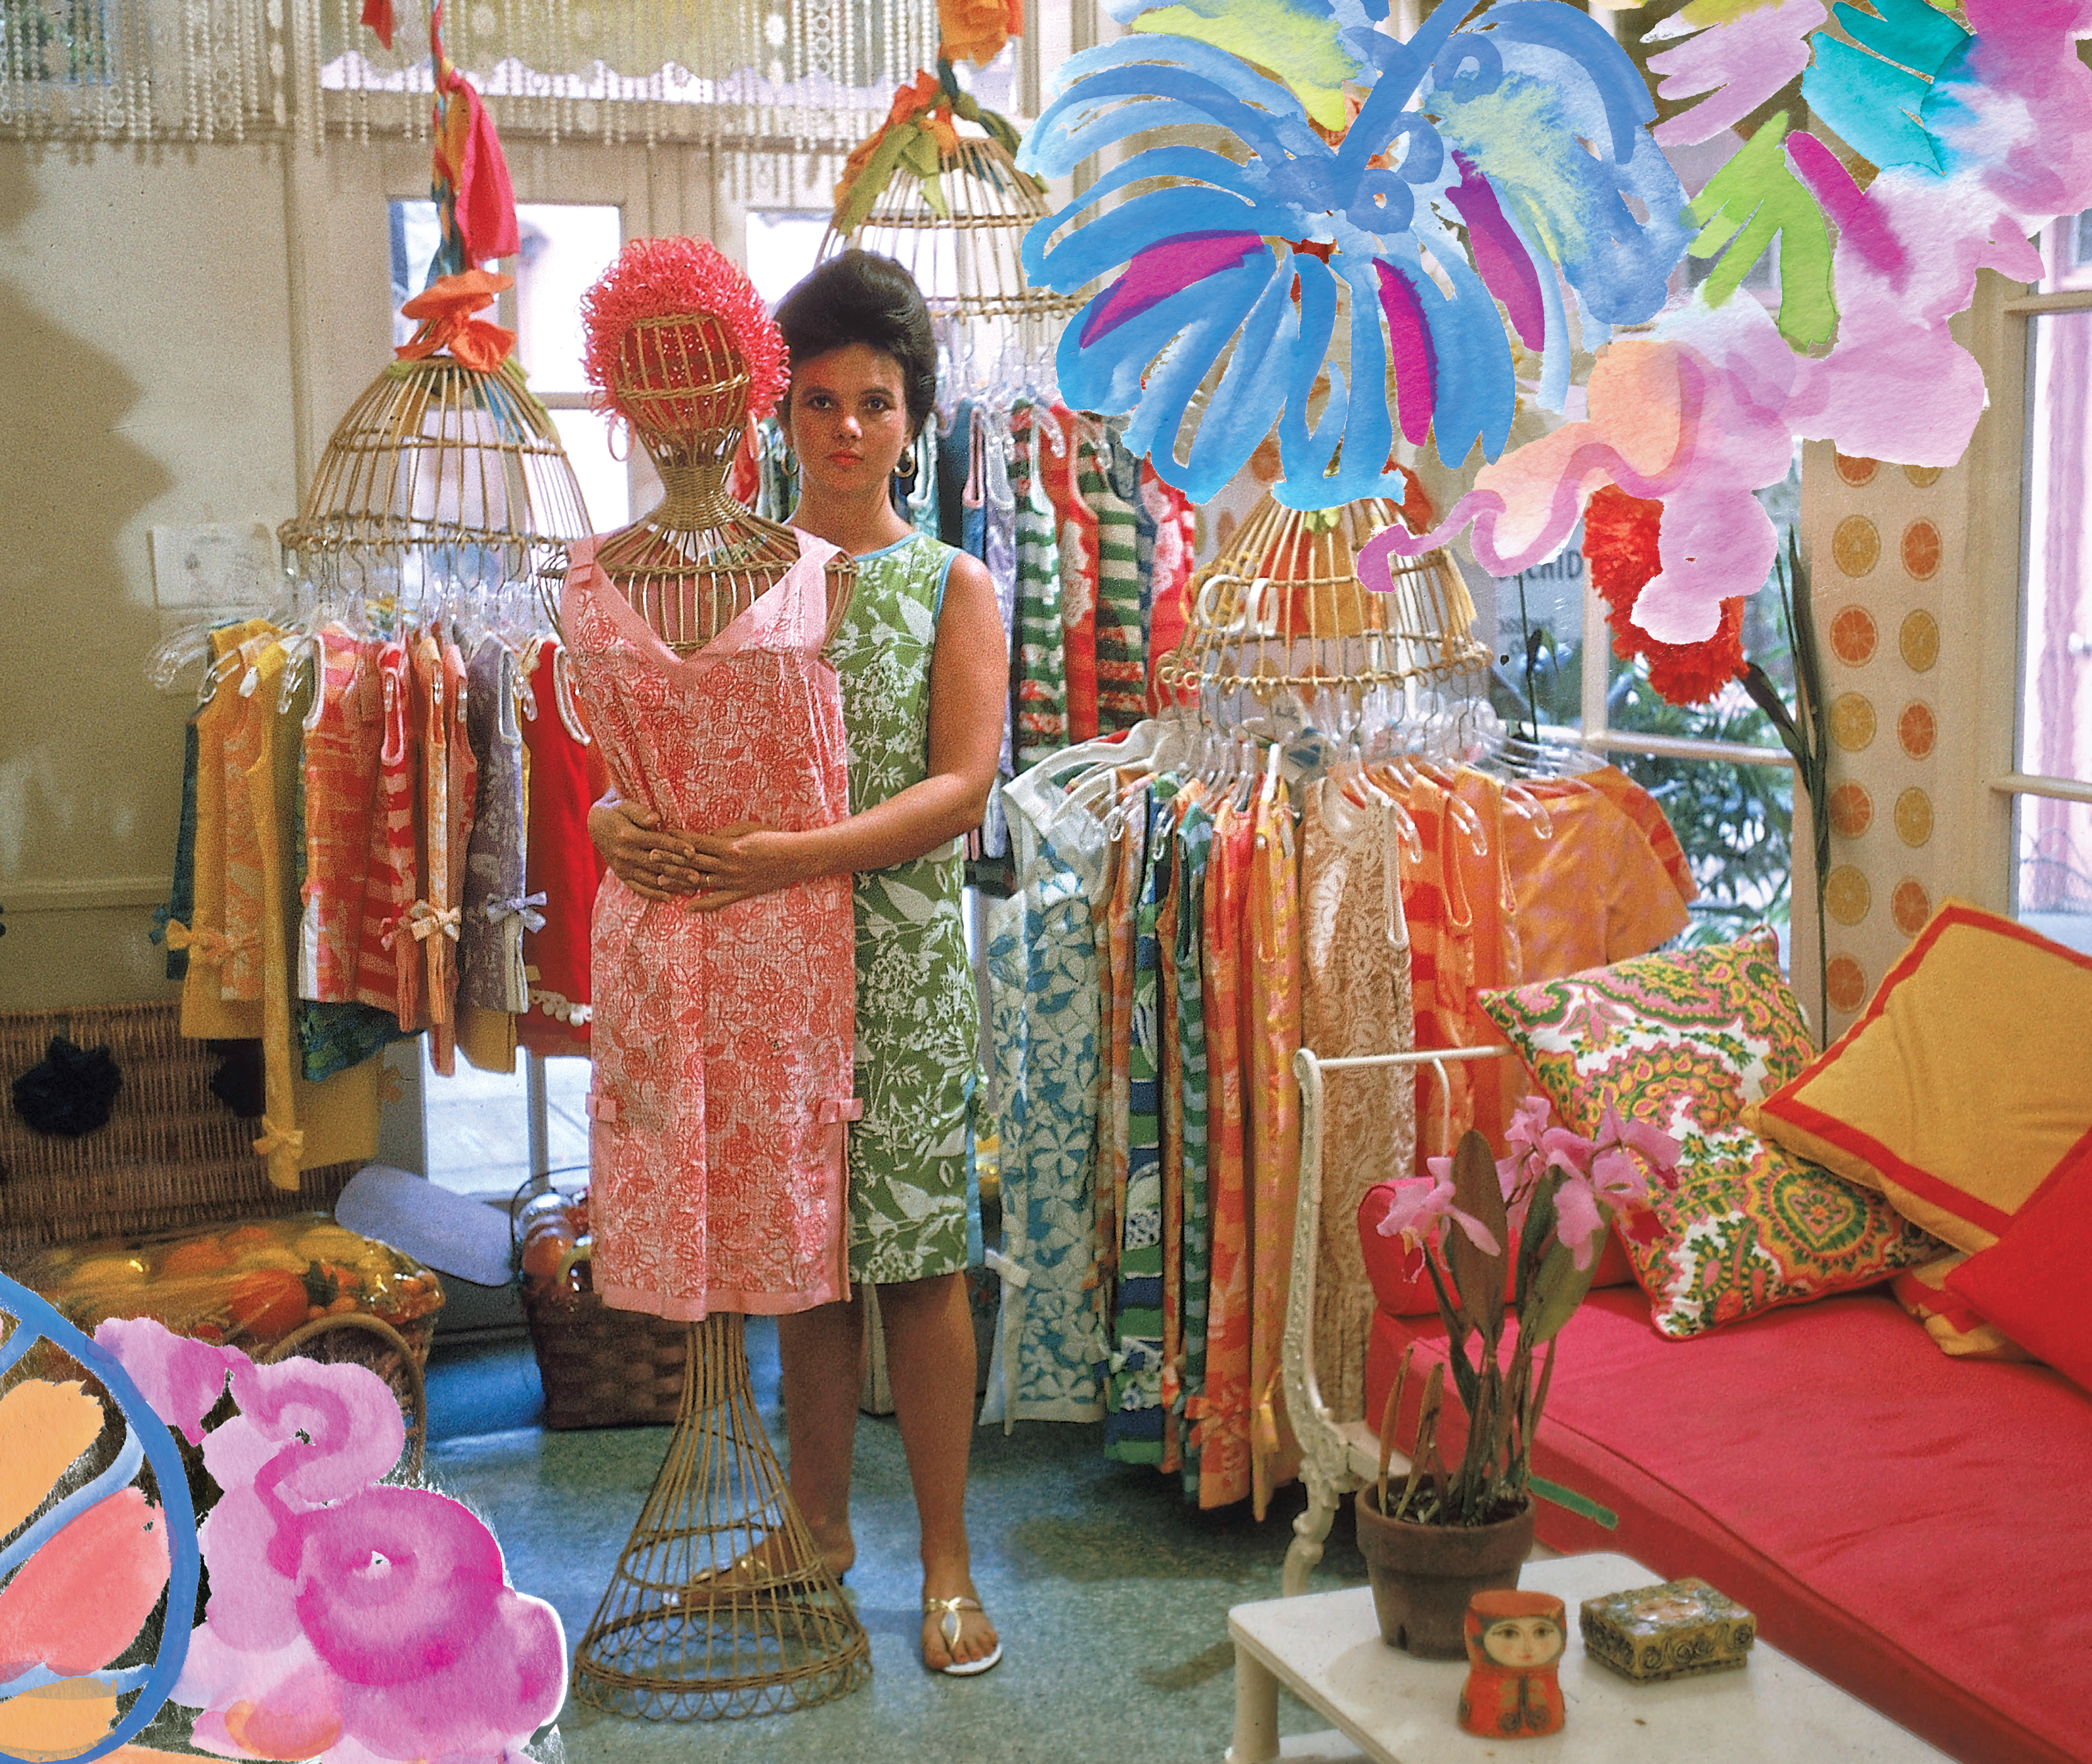 Lilly Pulitzer stands in her first shop. It is colorful and full of racks of dresses. A coach is visible. Lilly herself wears green shift dress and her hair up and hugs a rattan mannequin wearing a pink shift dress. Watercolor Lilly patterns are overlaid on the photos borders.